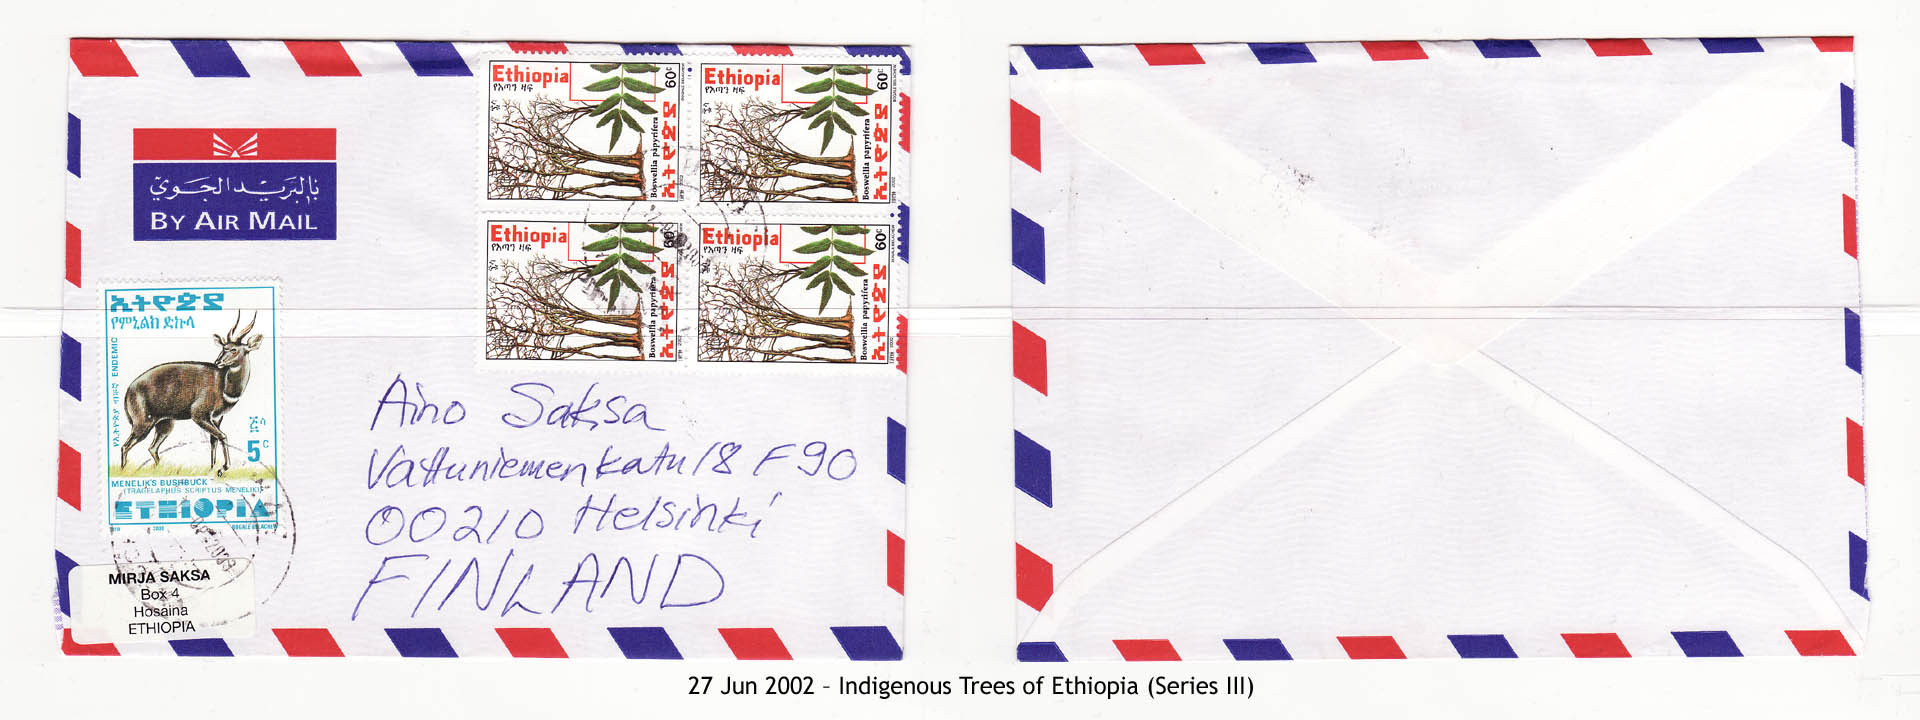 20020627 – Indigenous Trees of Ethiopia (Series III)